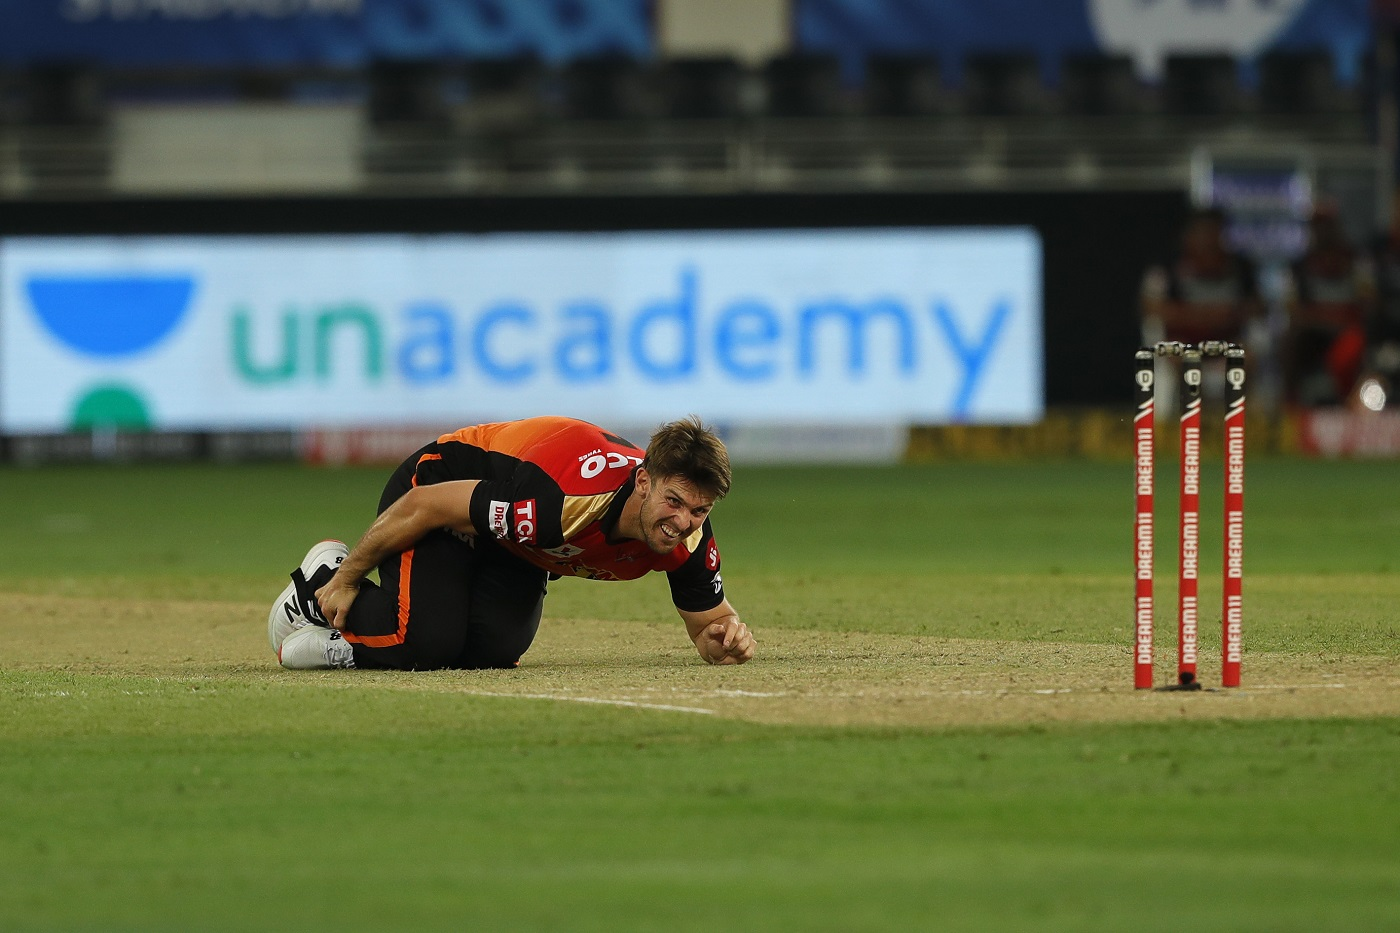 Mitchell Marsh likely to be ruled out from IPL 2020